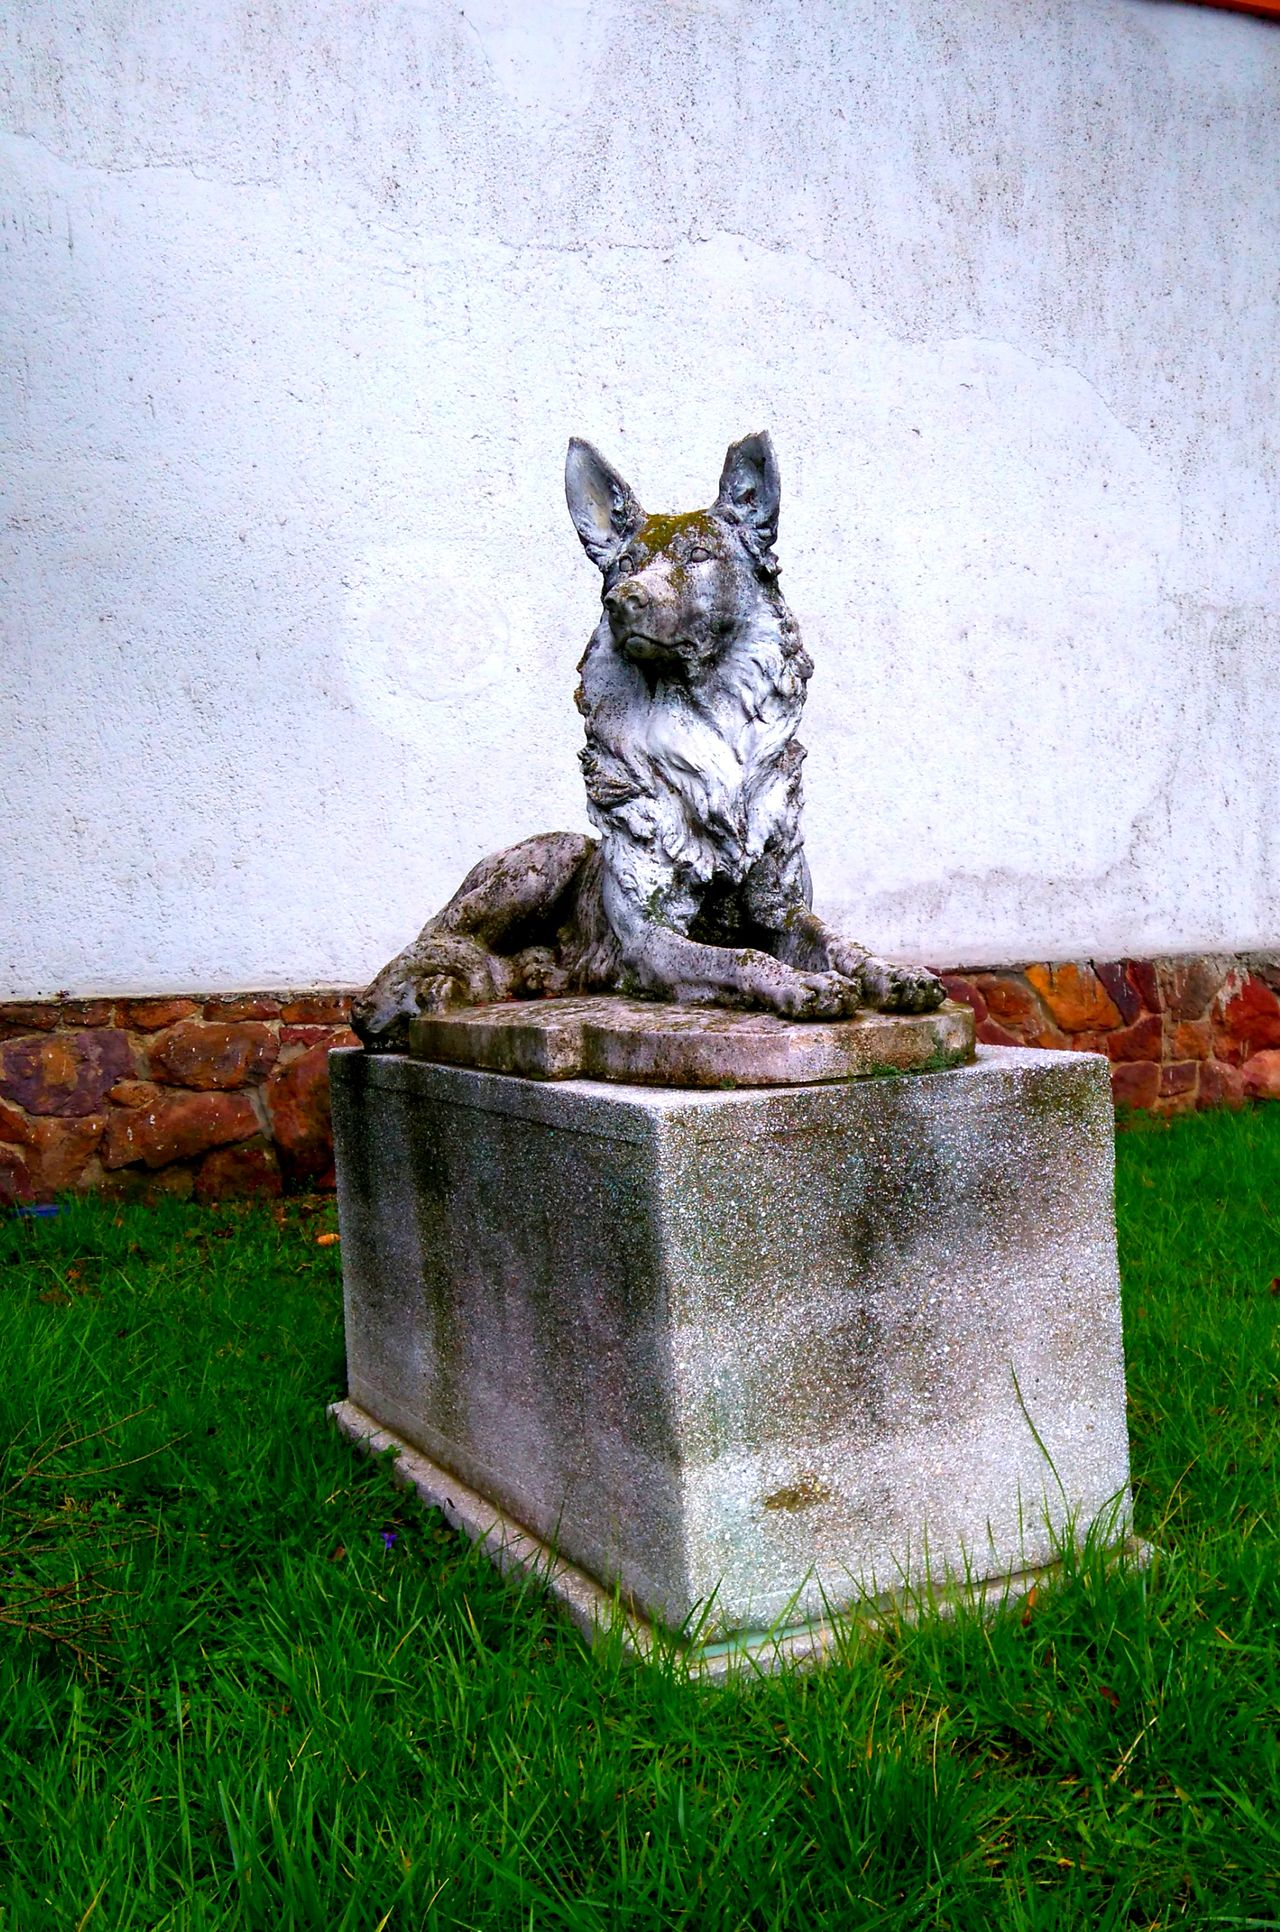 Made by Sony Xperia M4 Aqua Broken Cenotaph Dog German Shepherd Grass Old Portrait Sculpture Statue Szombathely Tomb Unknown